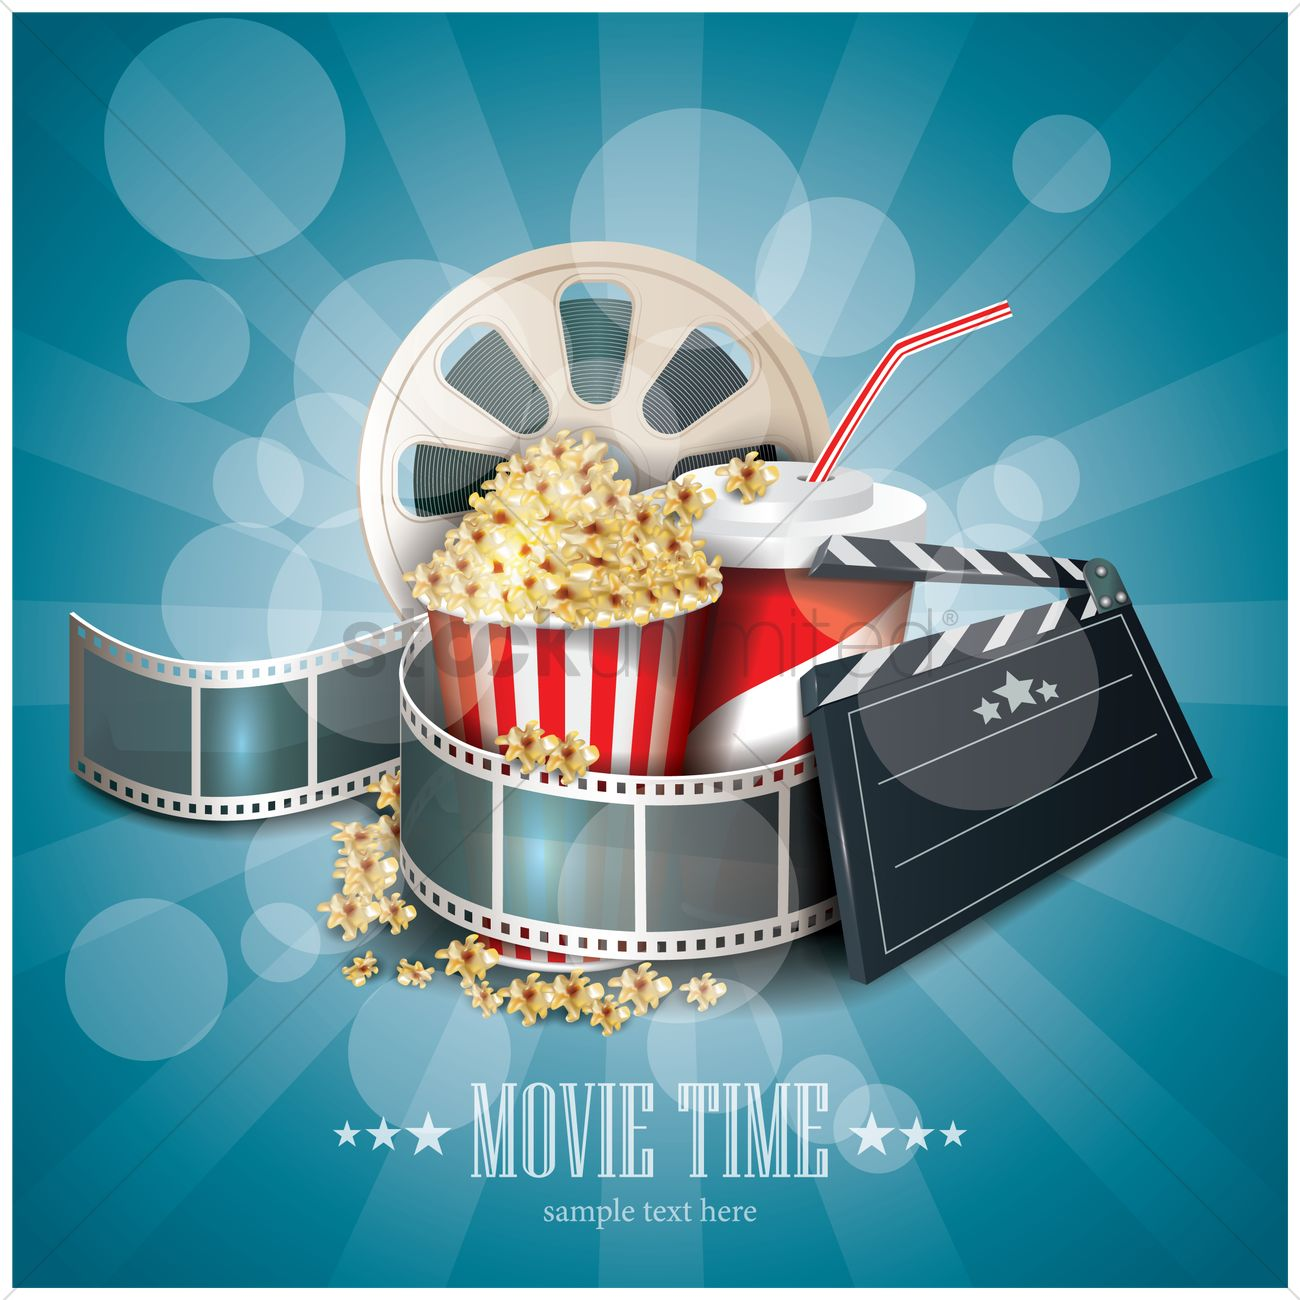 movie time wallpaper vector image - 1804978 | stockunlimited